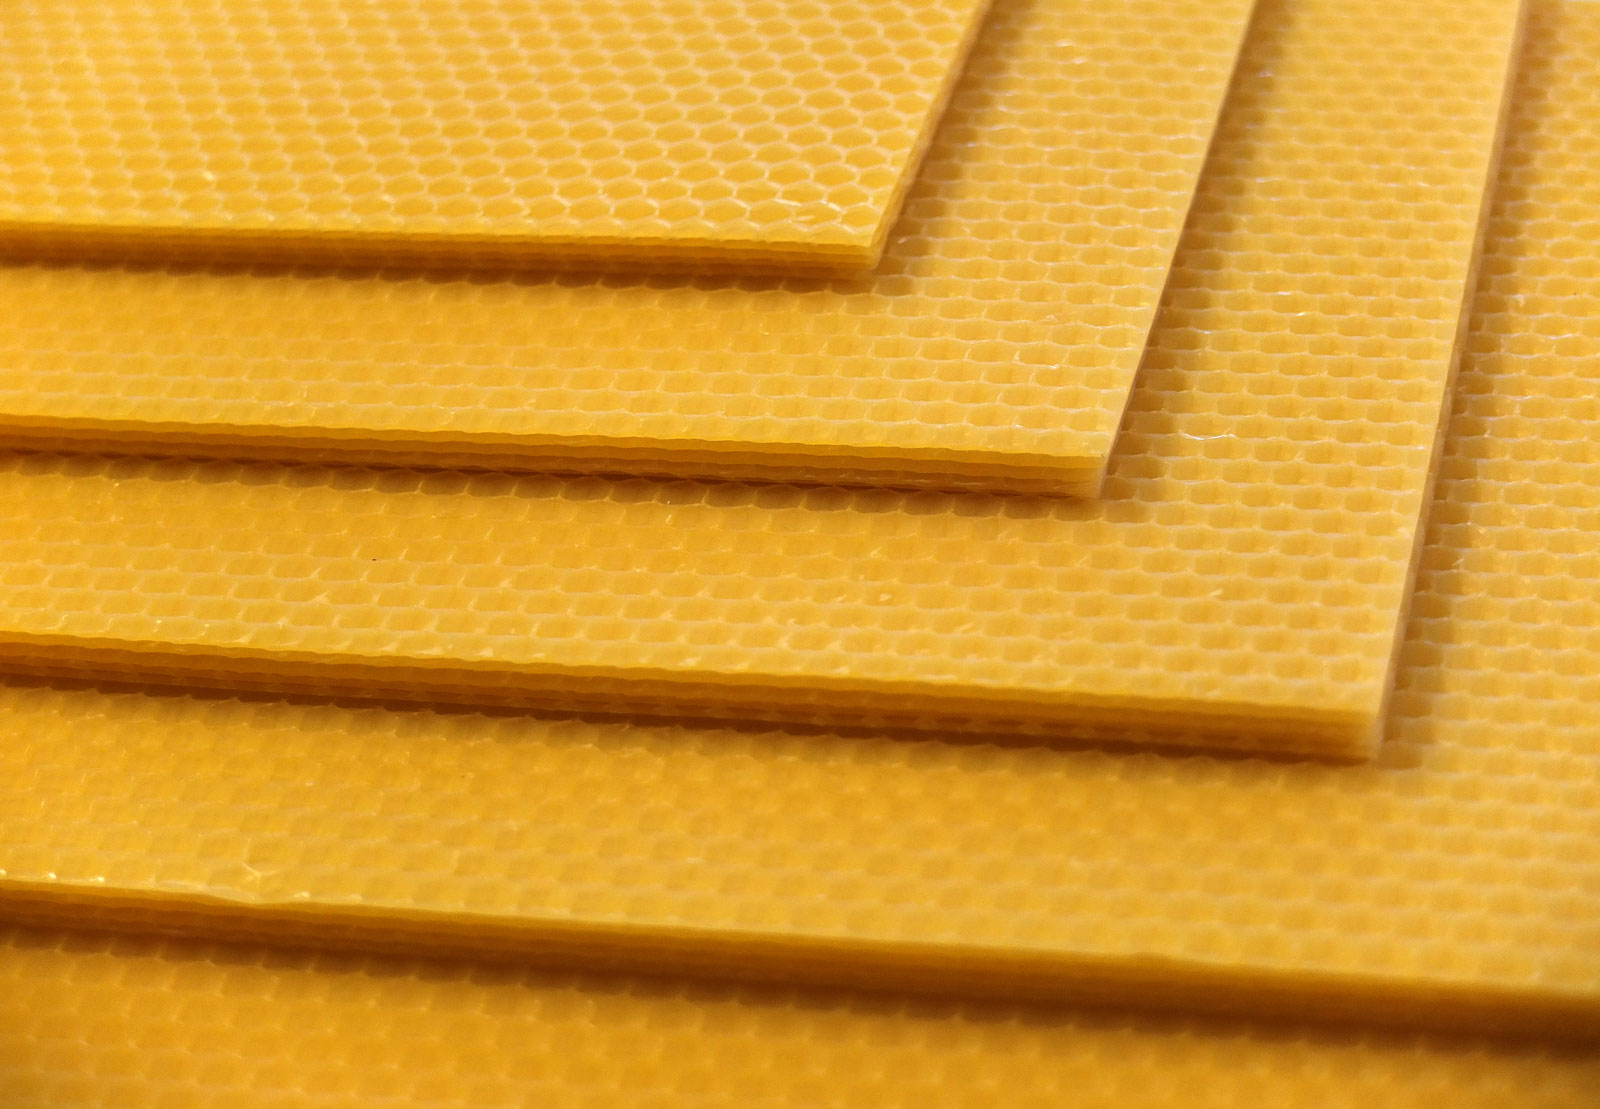 New-Zealand-Beeswax-Comb-Foundation